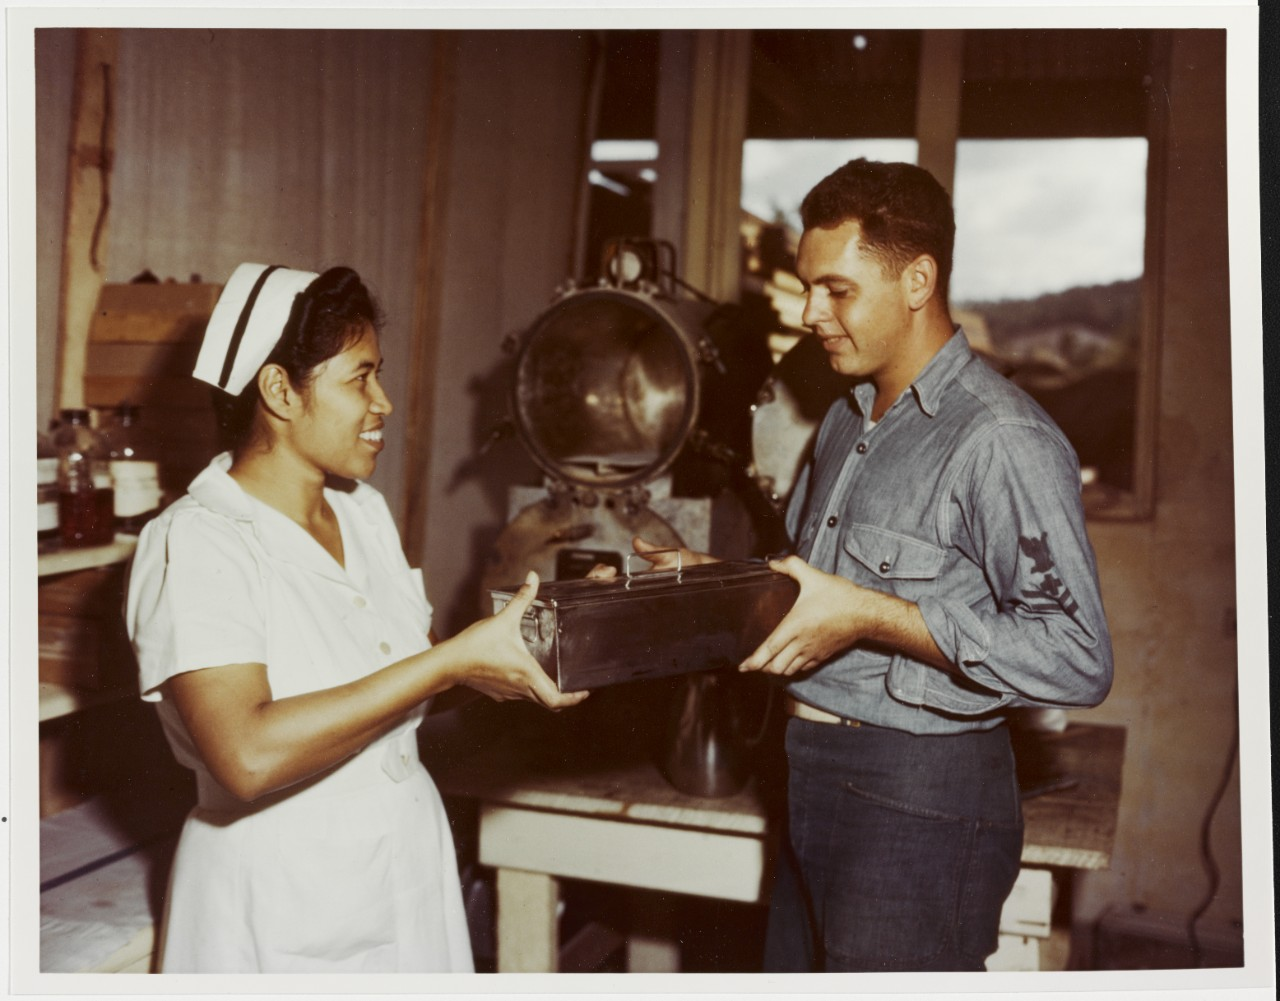 U.S. Navy Hospital Corpsman assists a local nurse in Guam, 1944-1945